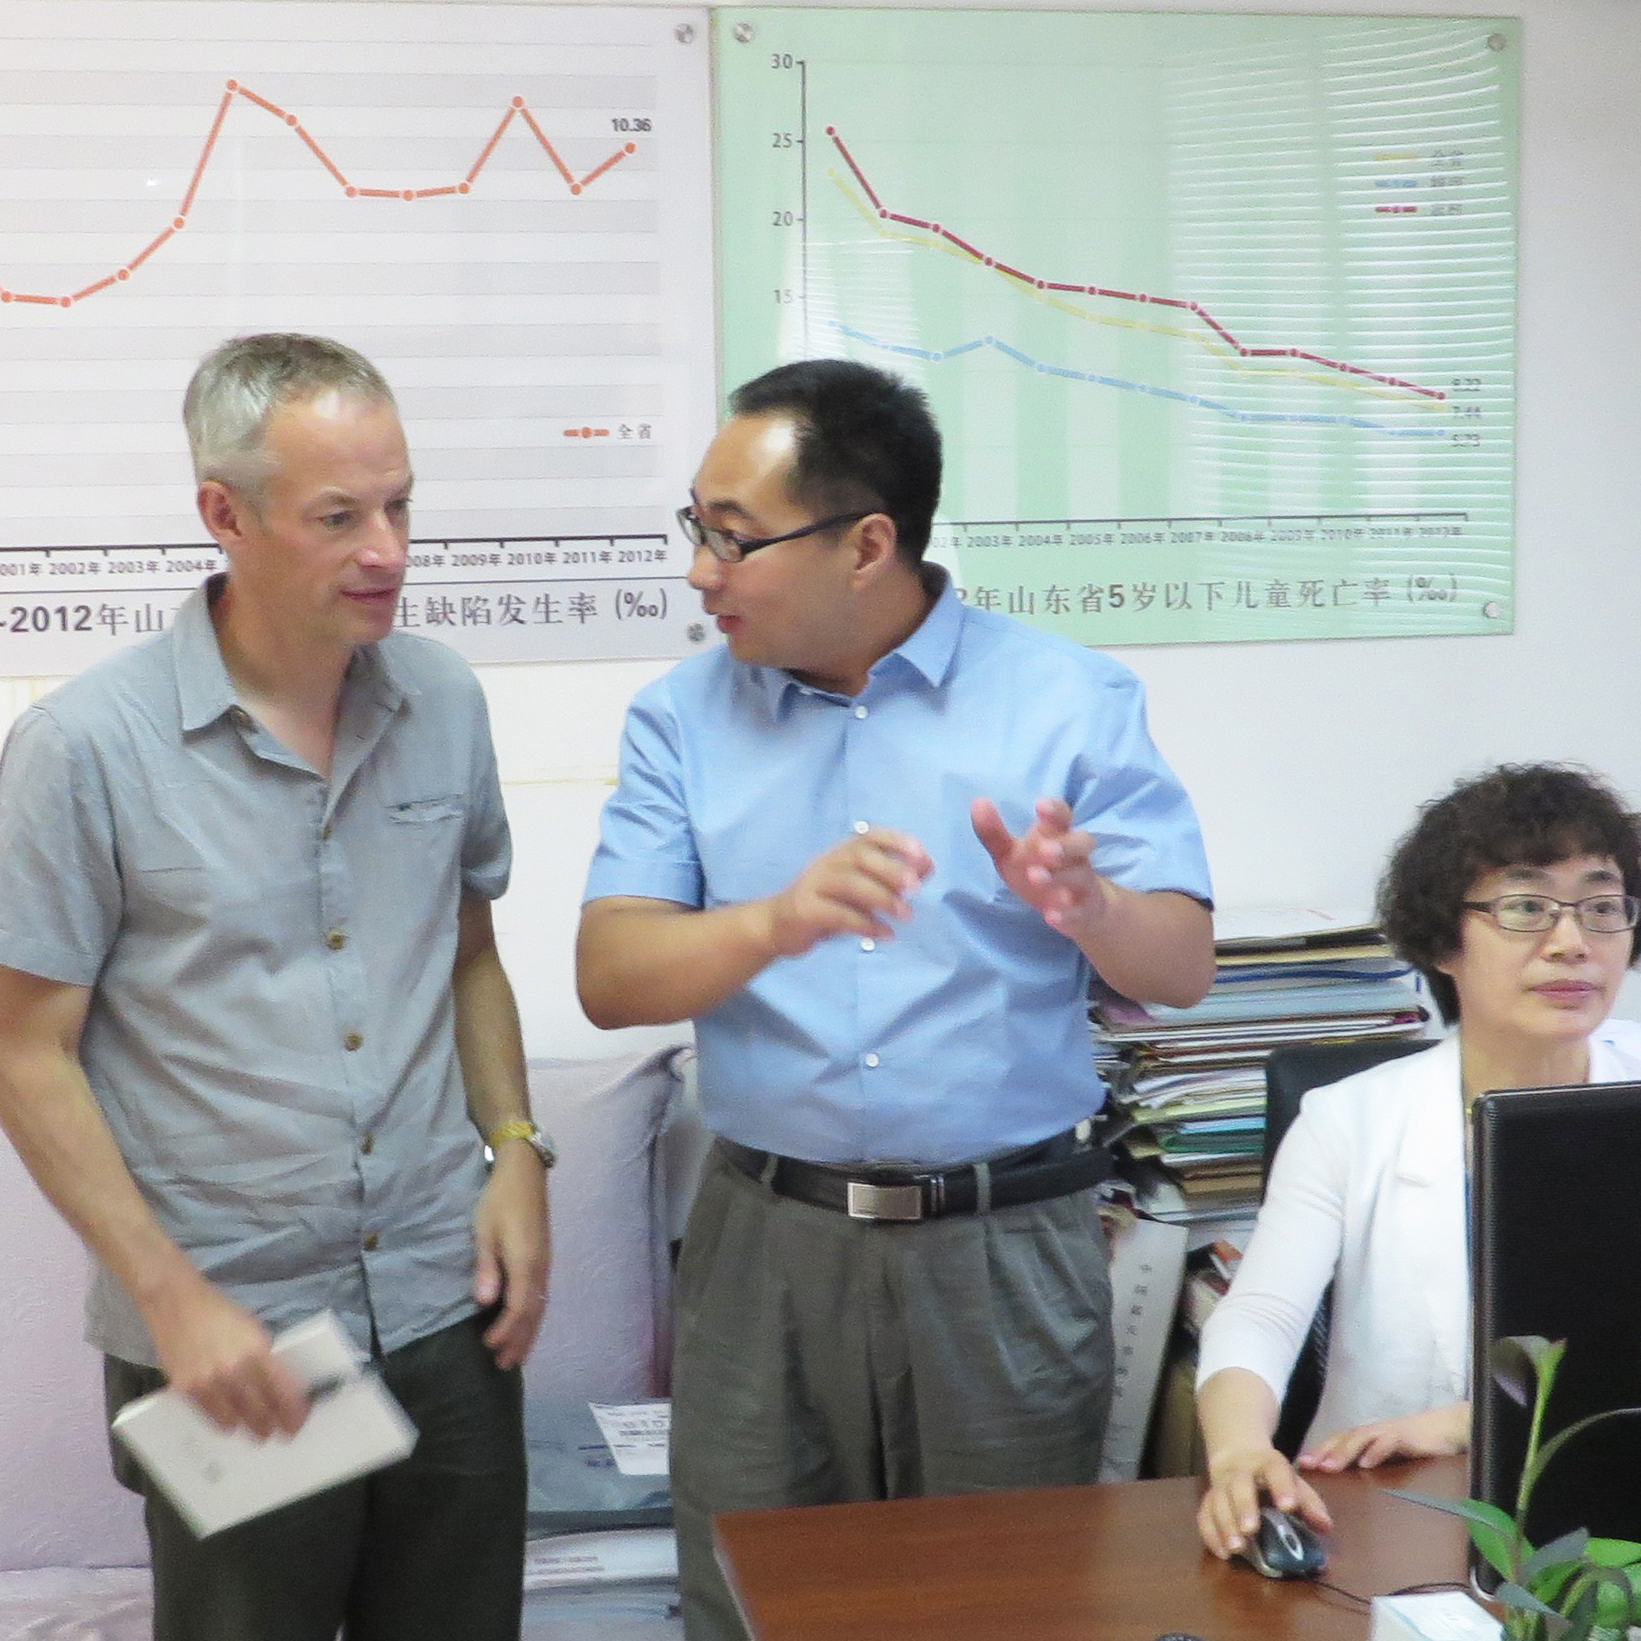 Prof Nick Greene in PKU